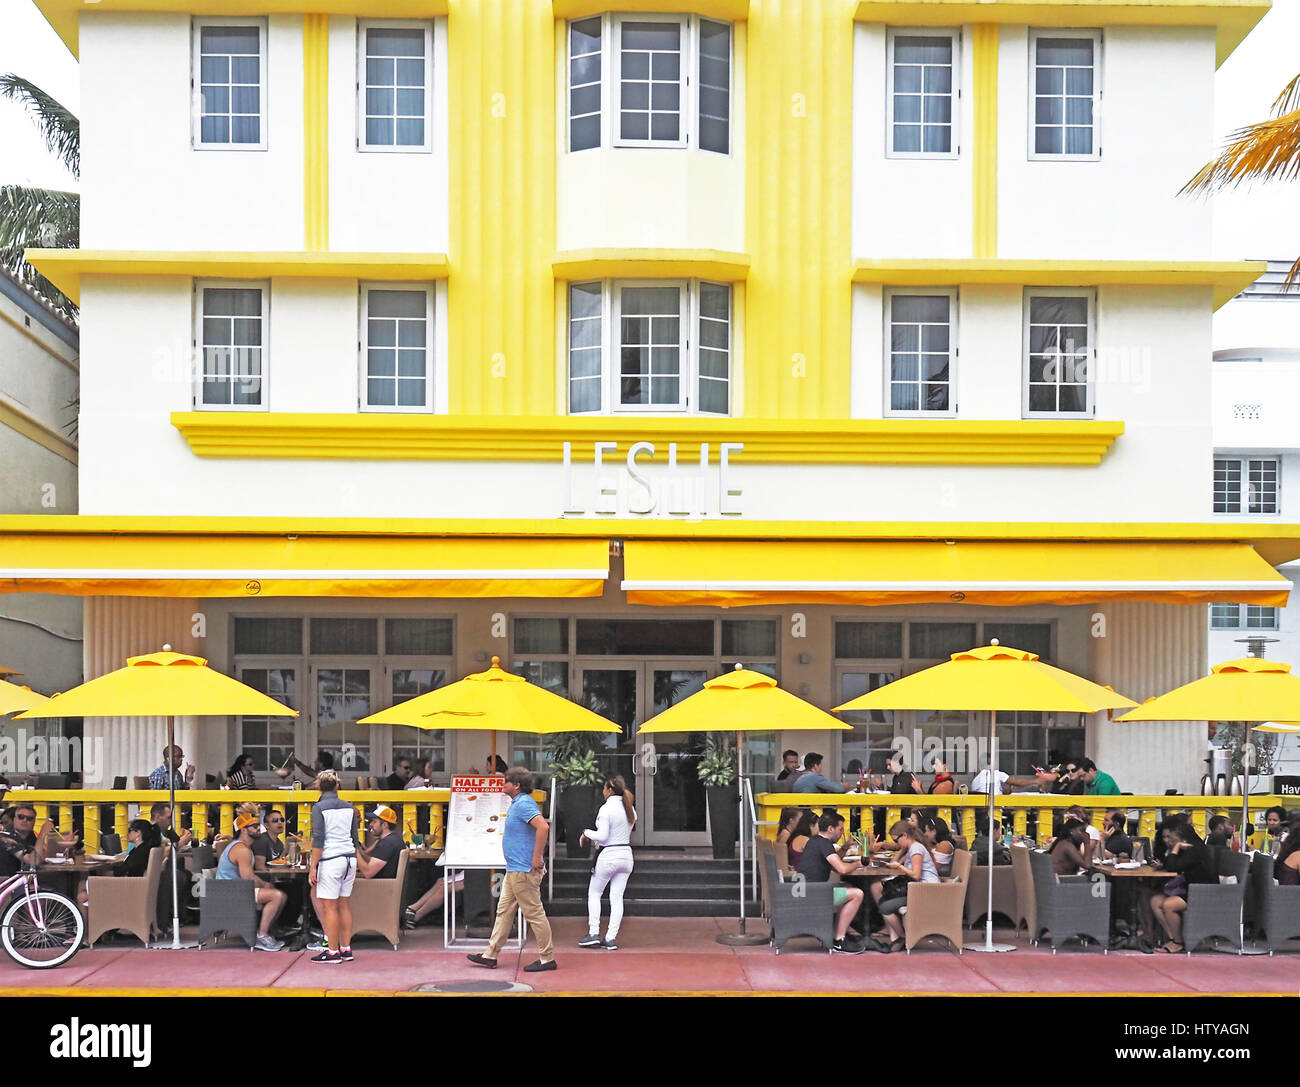 Leslie Hotel in Art Deco District of South Miami Beach (SoBe). - Stock Image